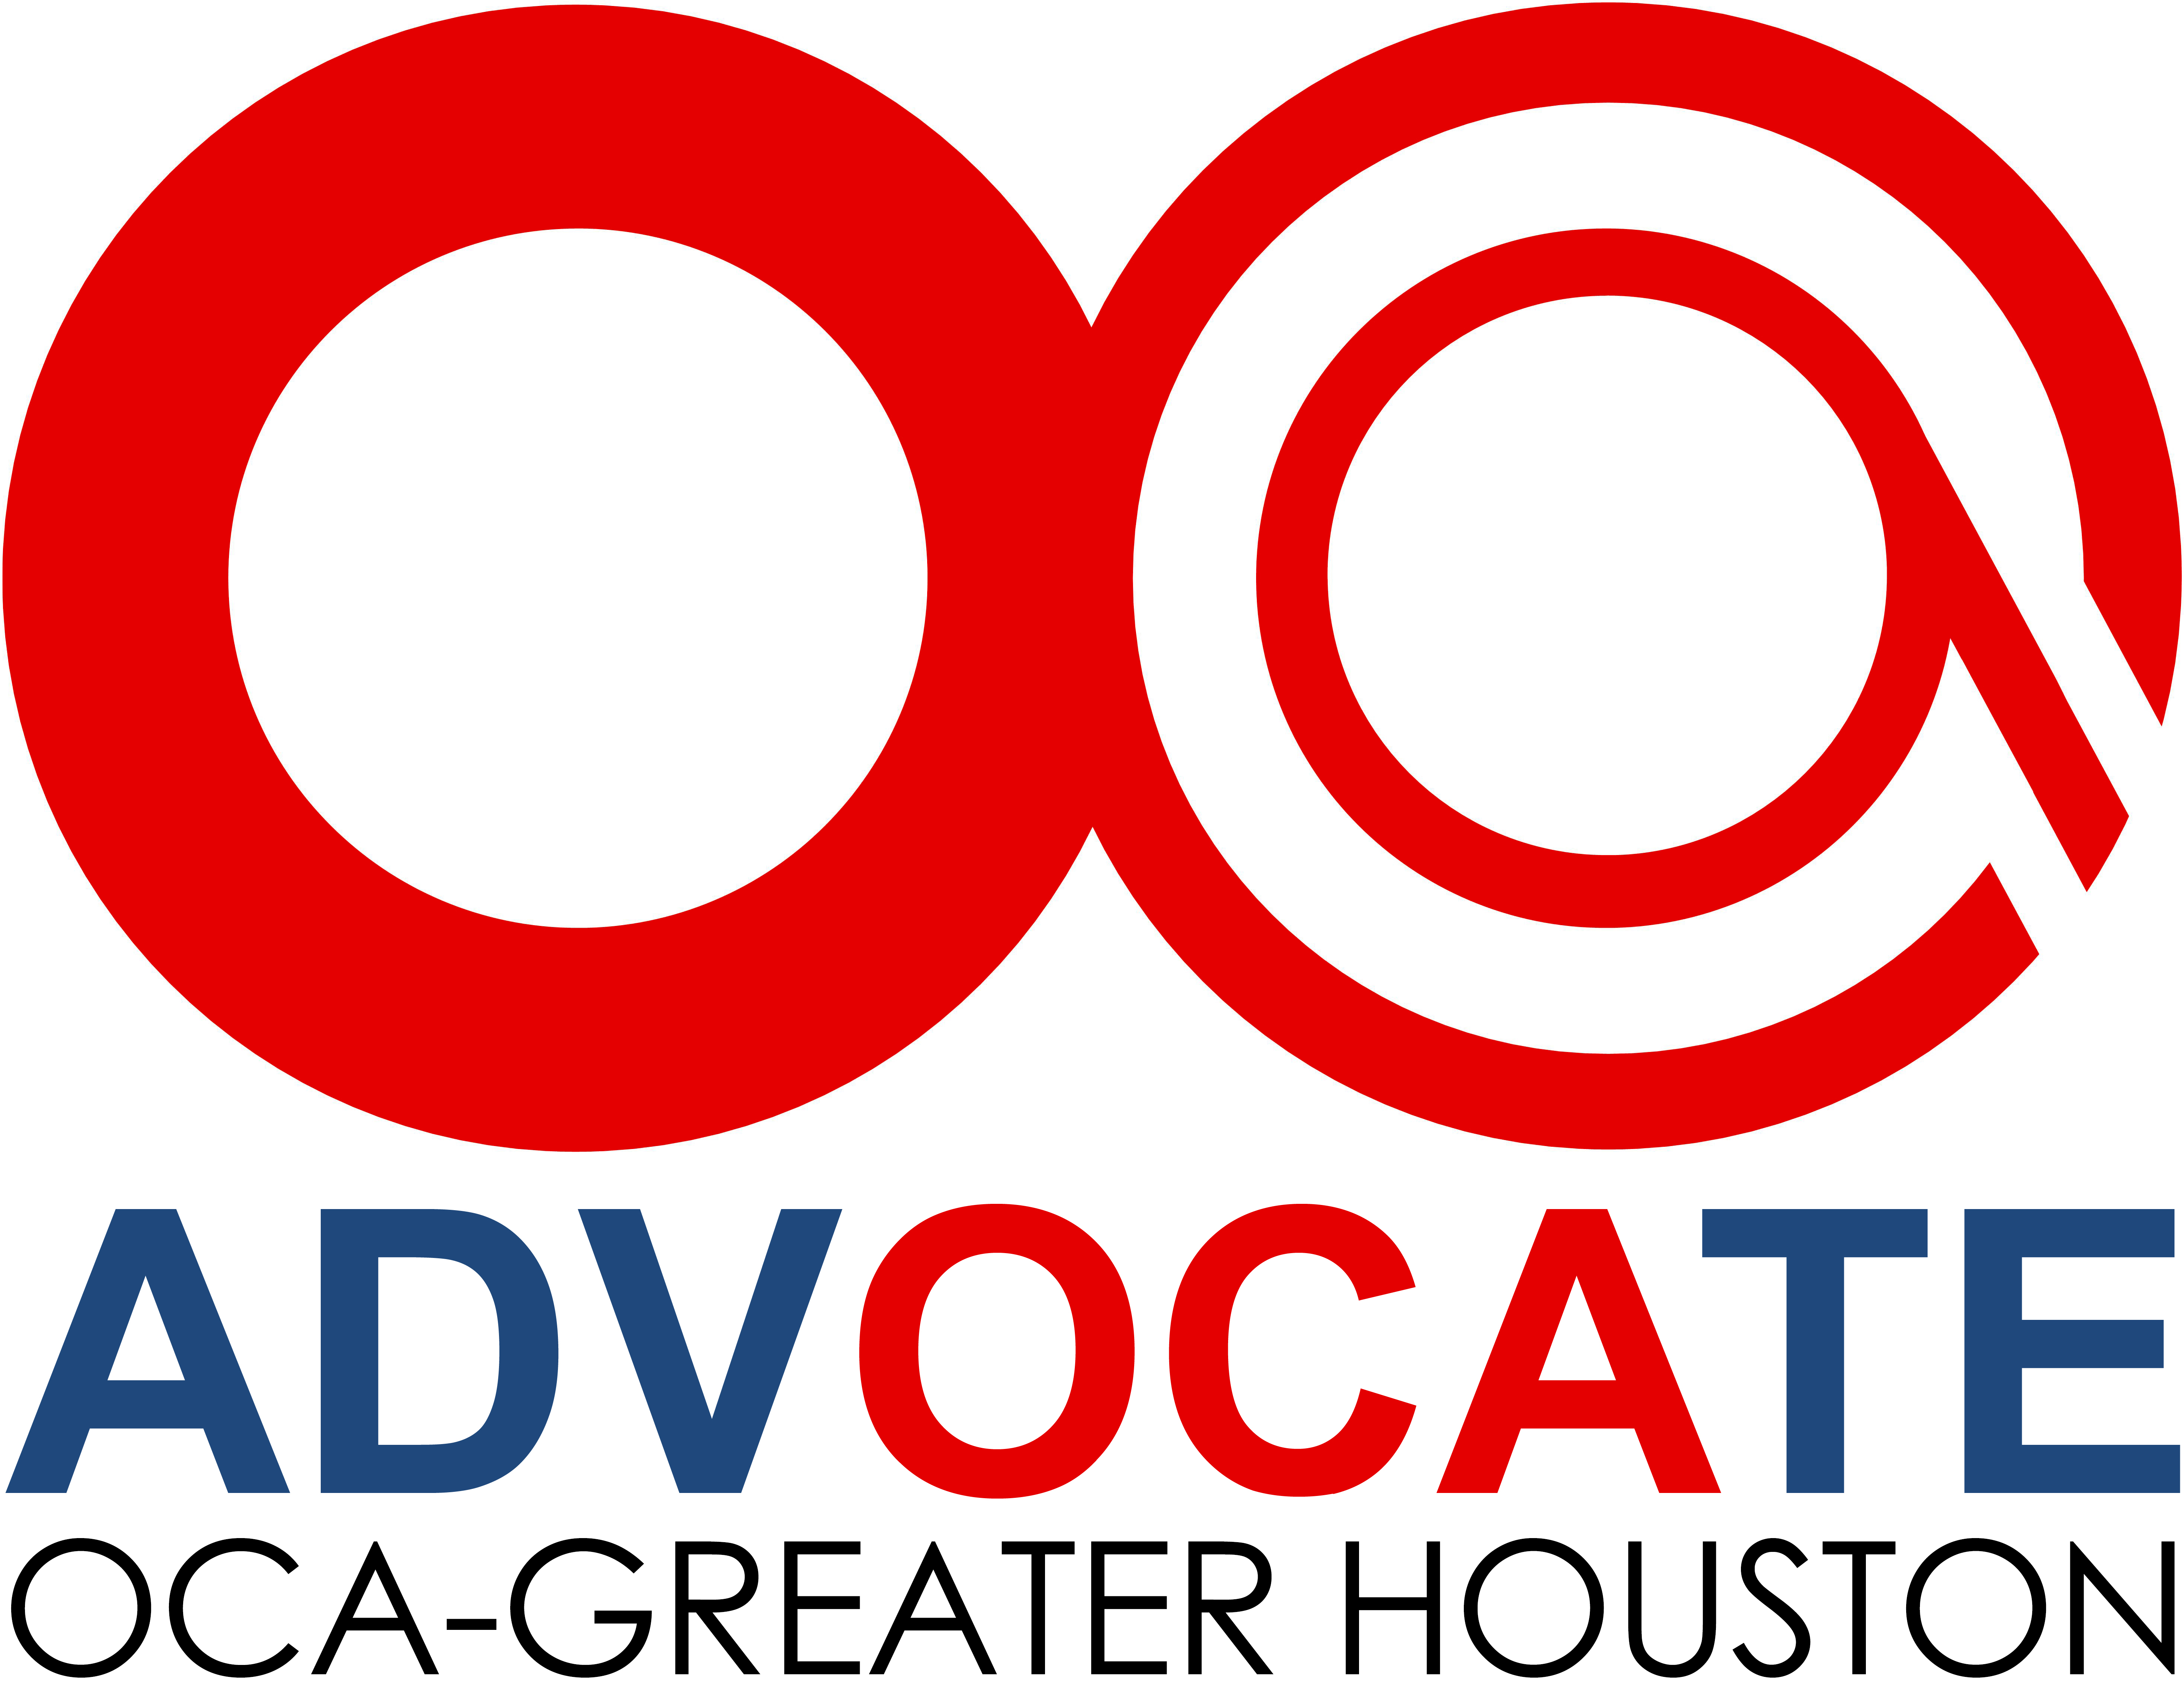 OCA_advocate_logo_houston.jpg